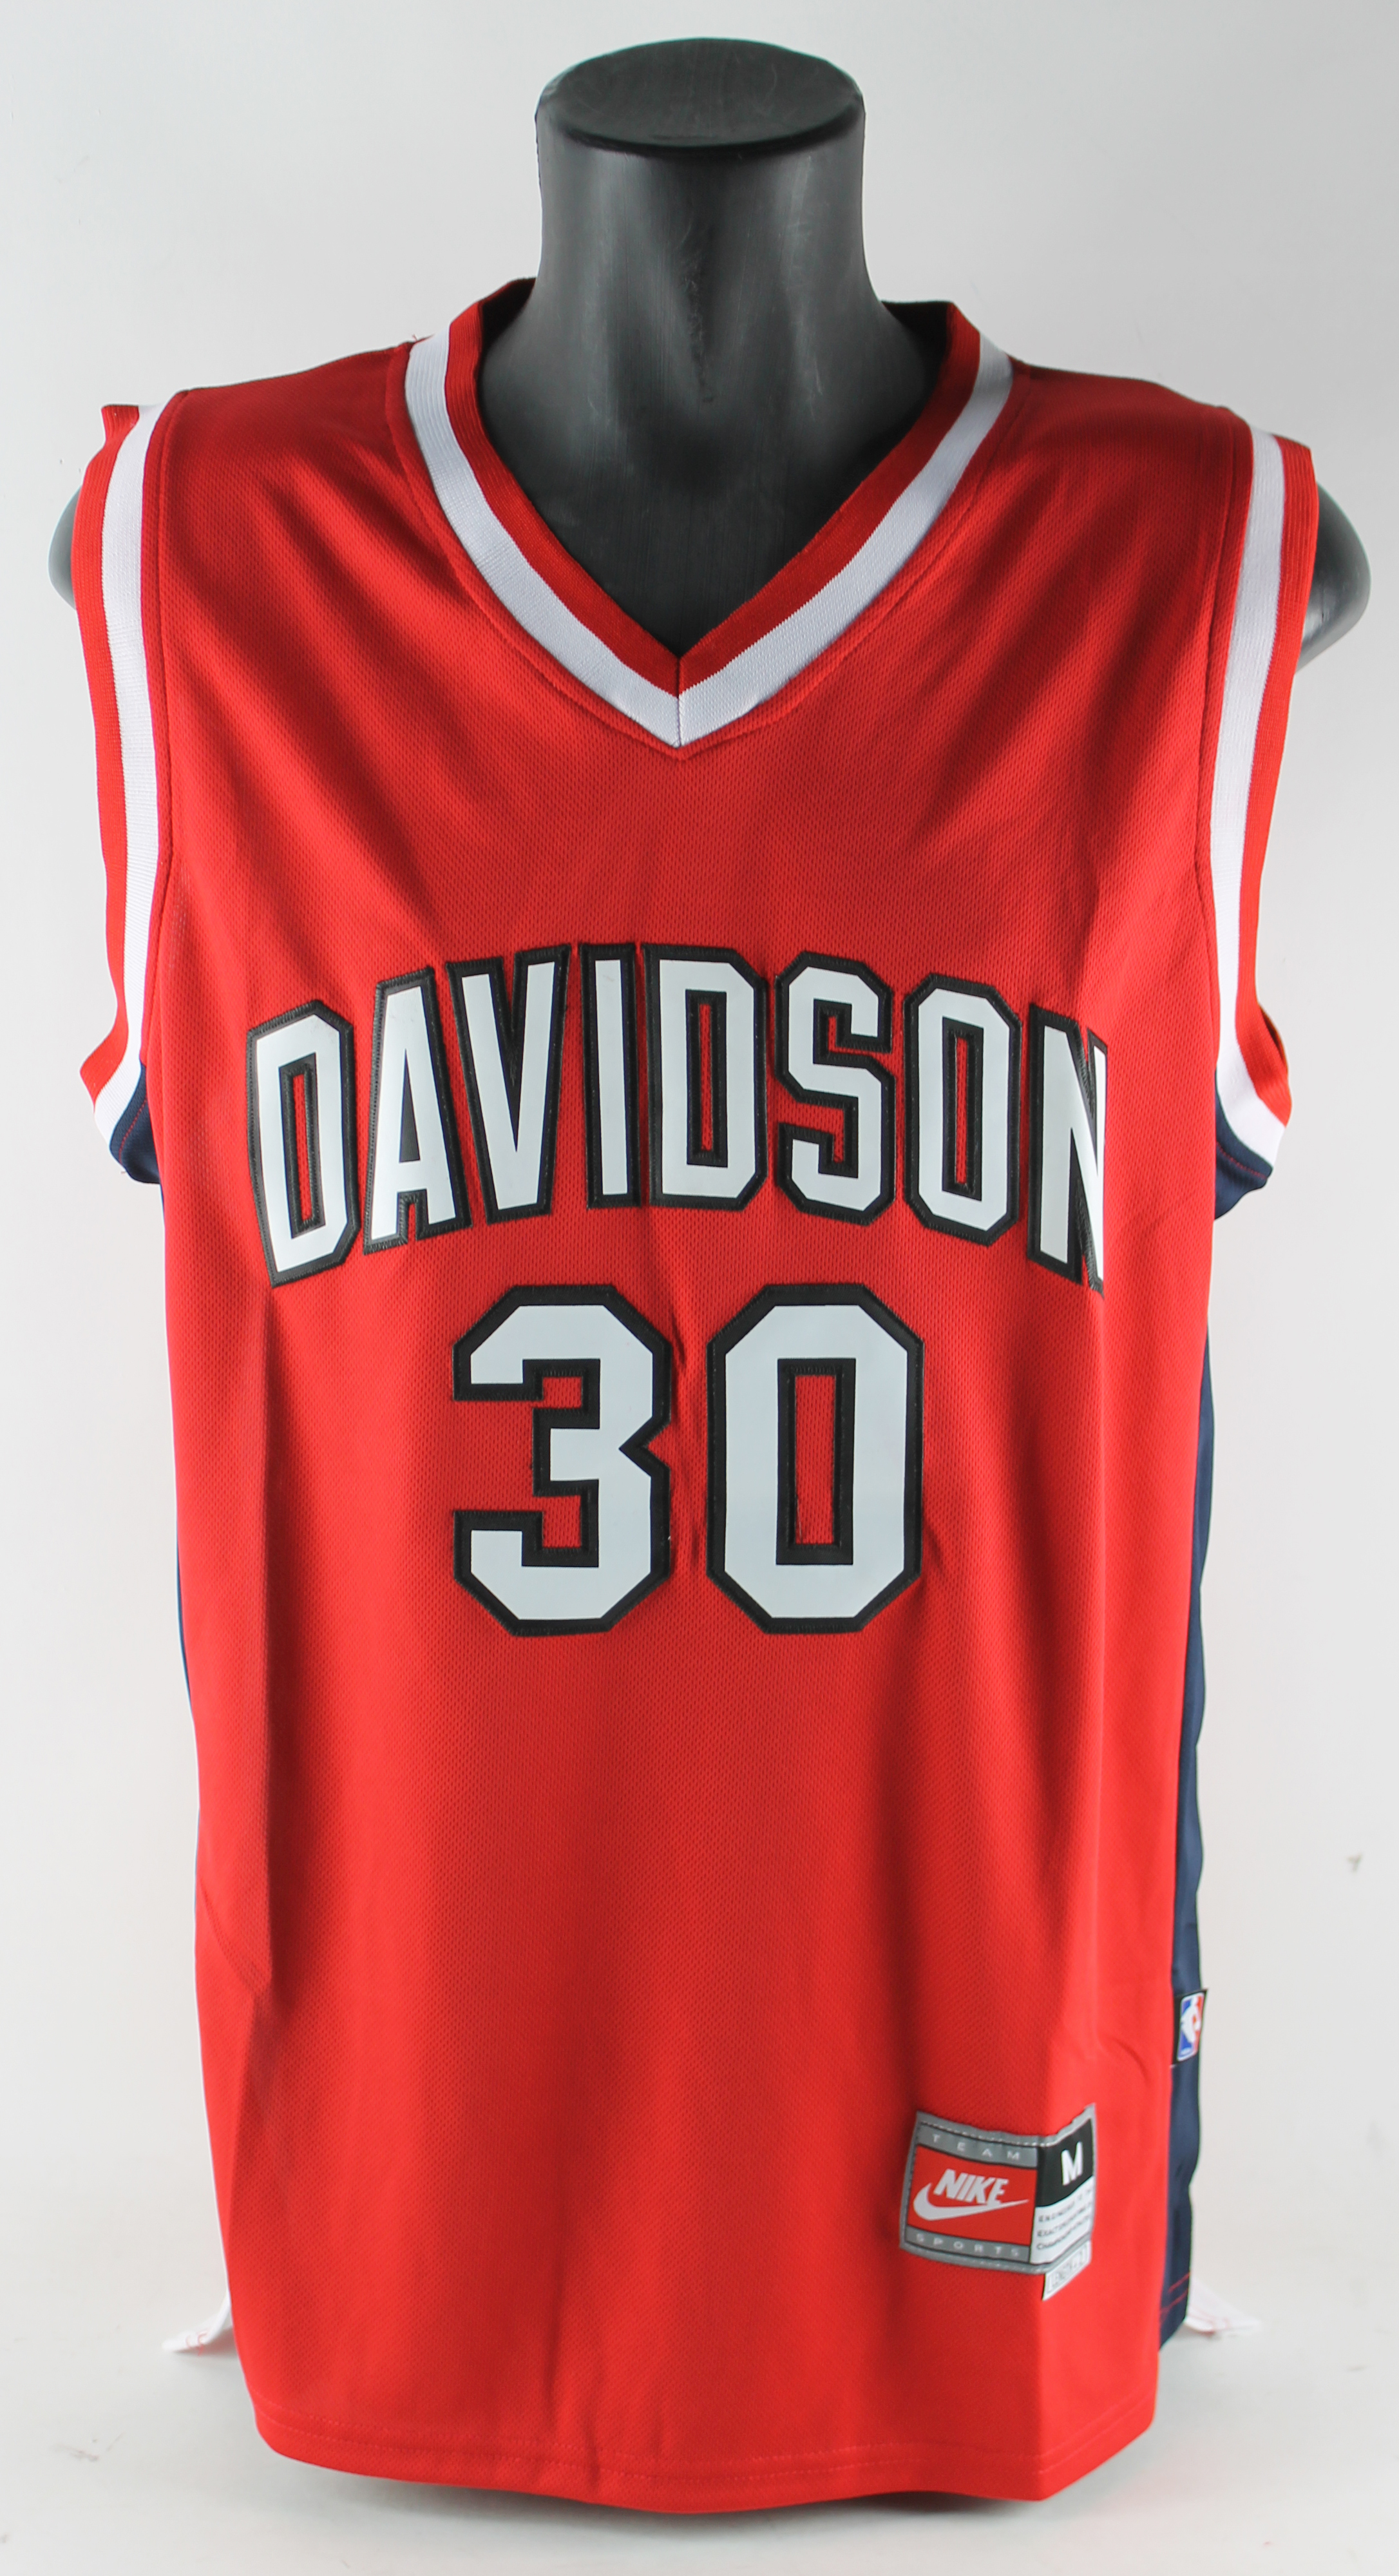 37b78f12b7a8 Lot Detail - Steph Curry Signed Davidson College Model Jersey (JSA)